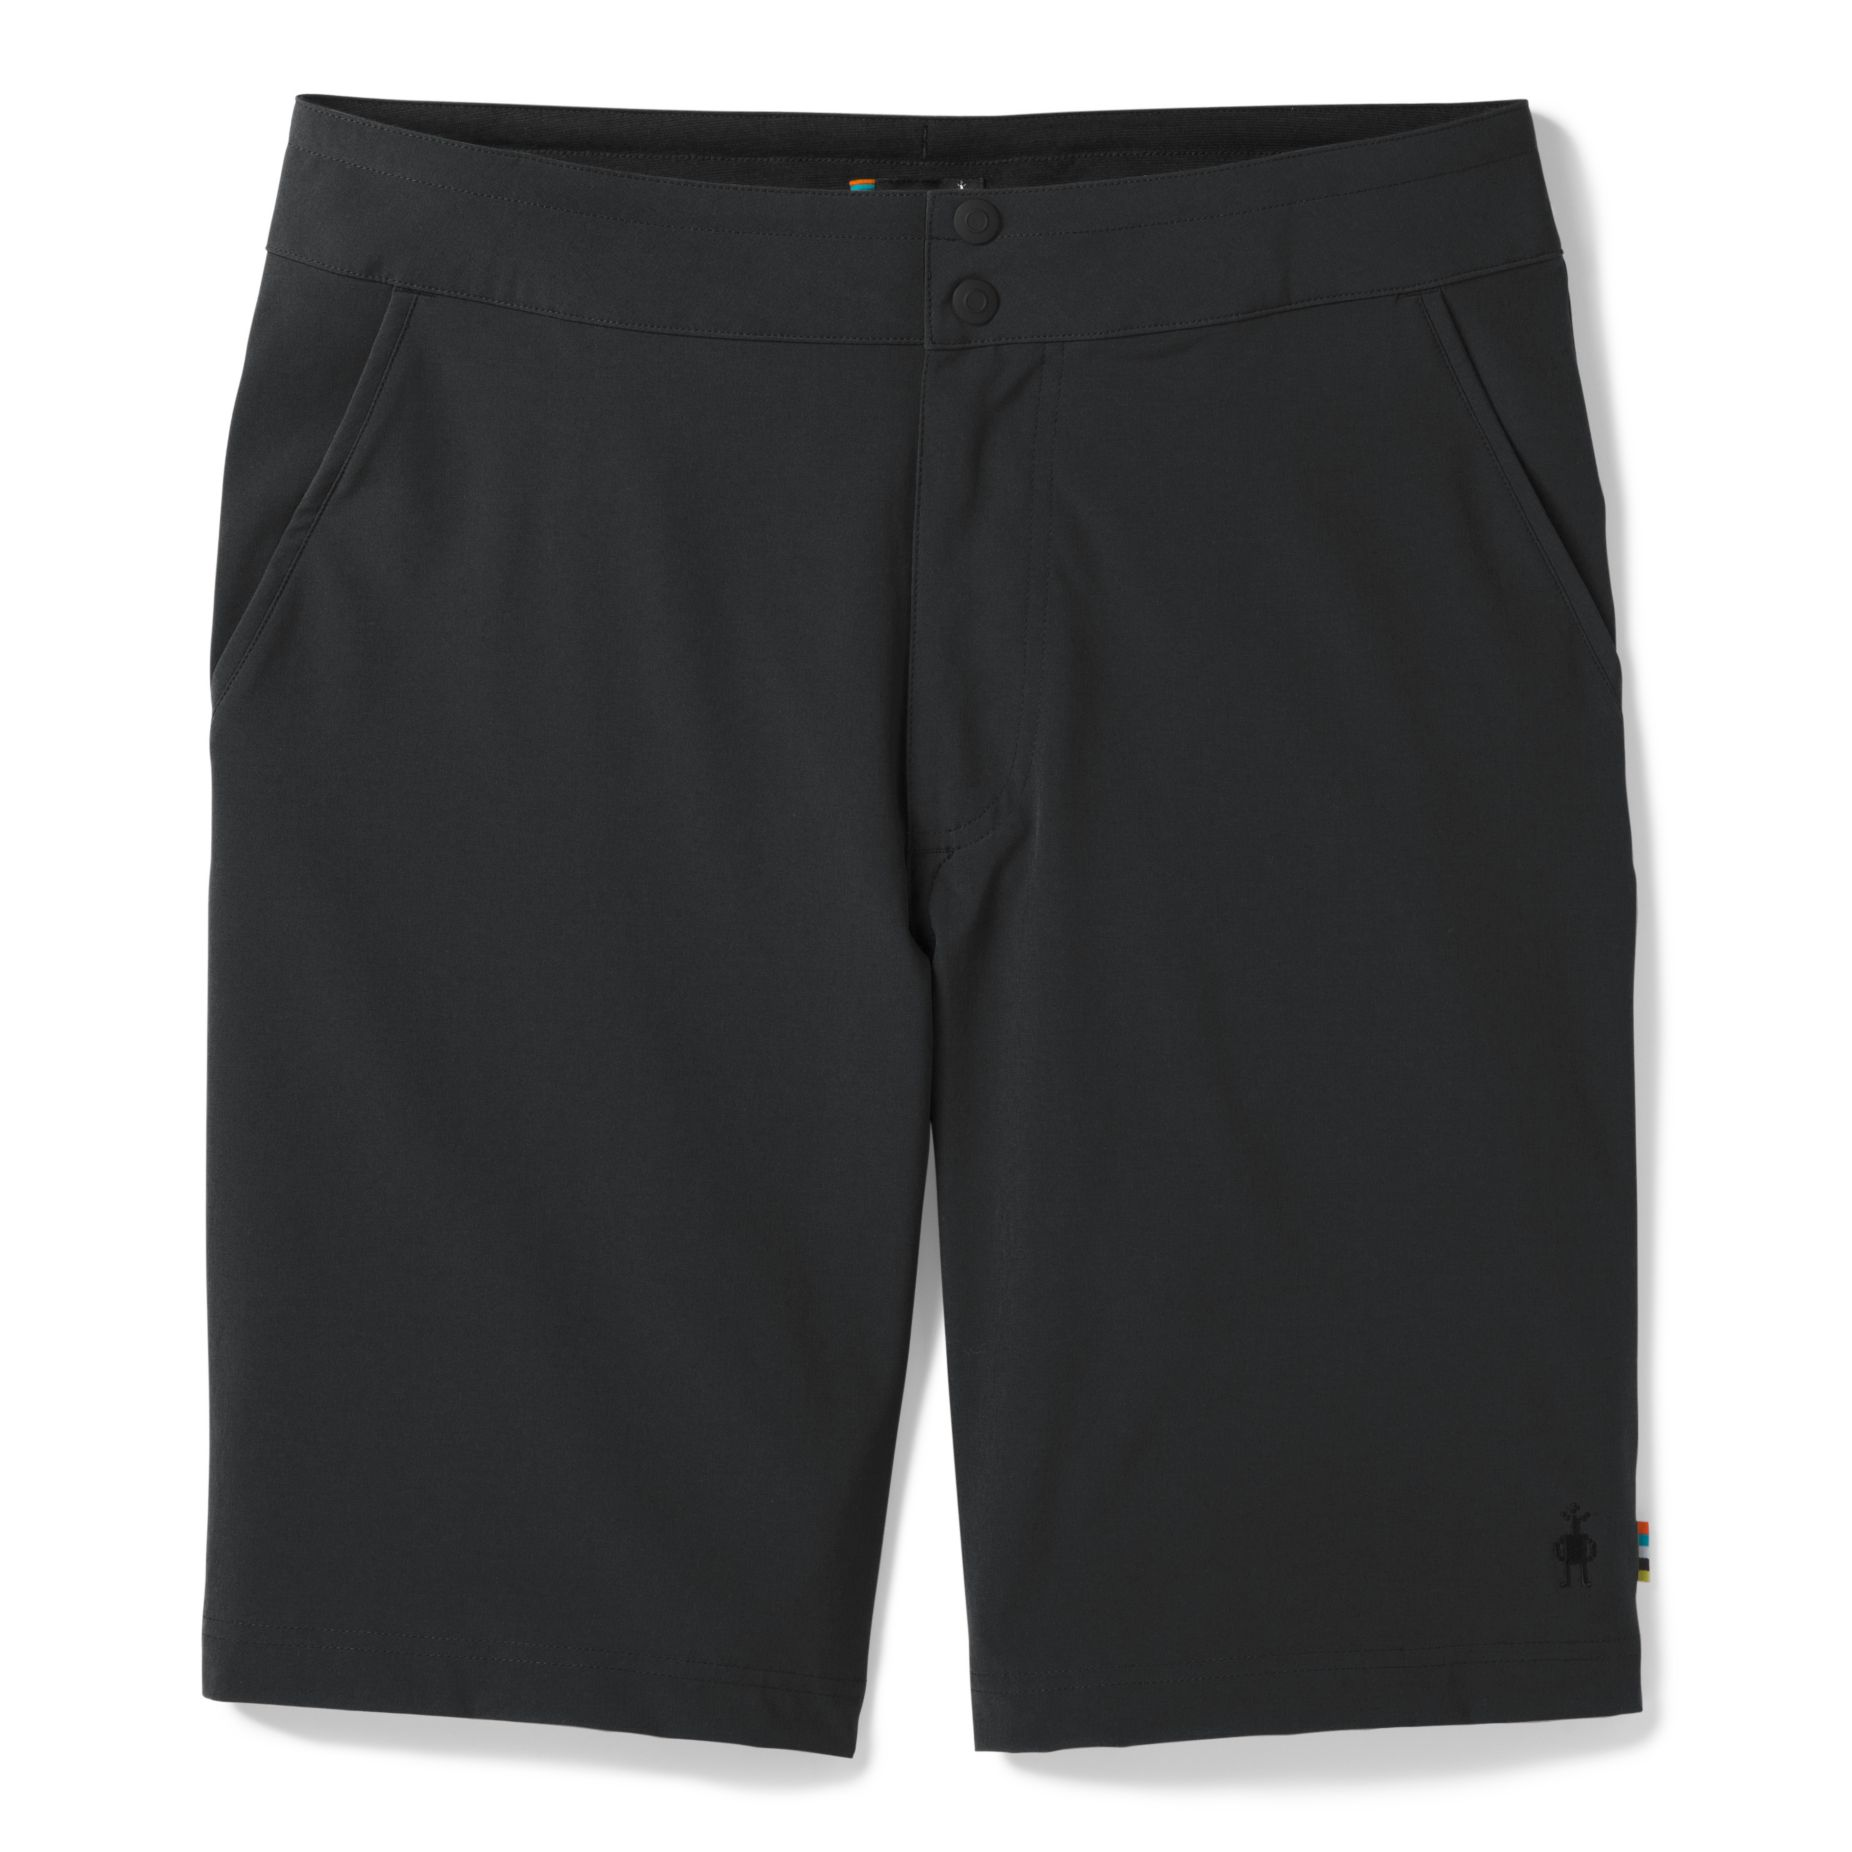 Merino Sport 10 in Short - Men's